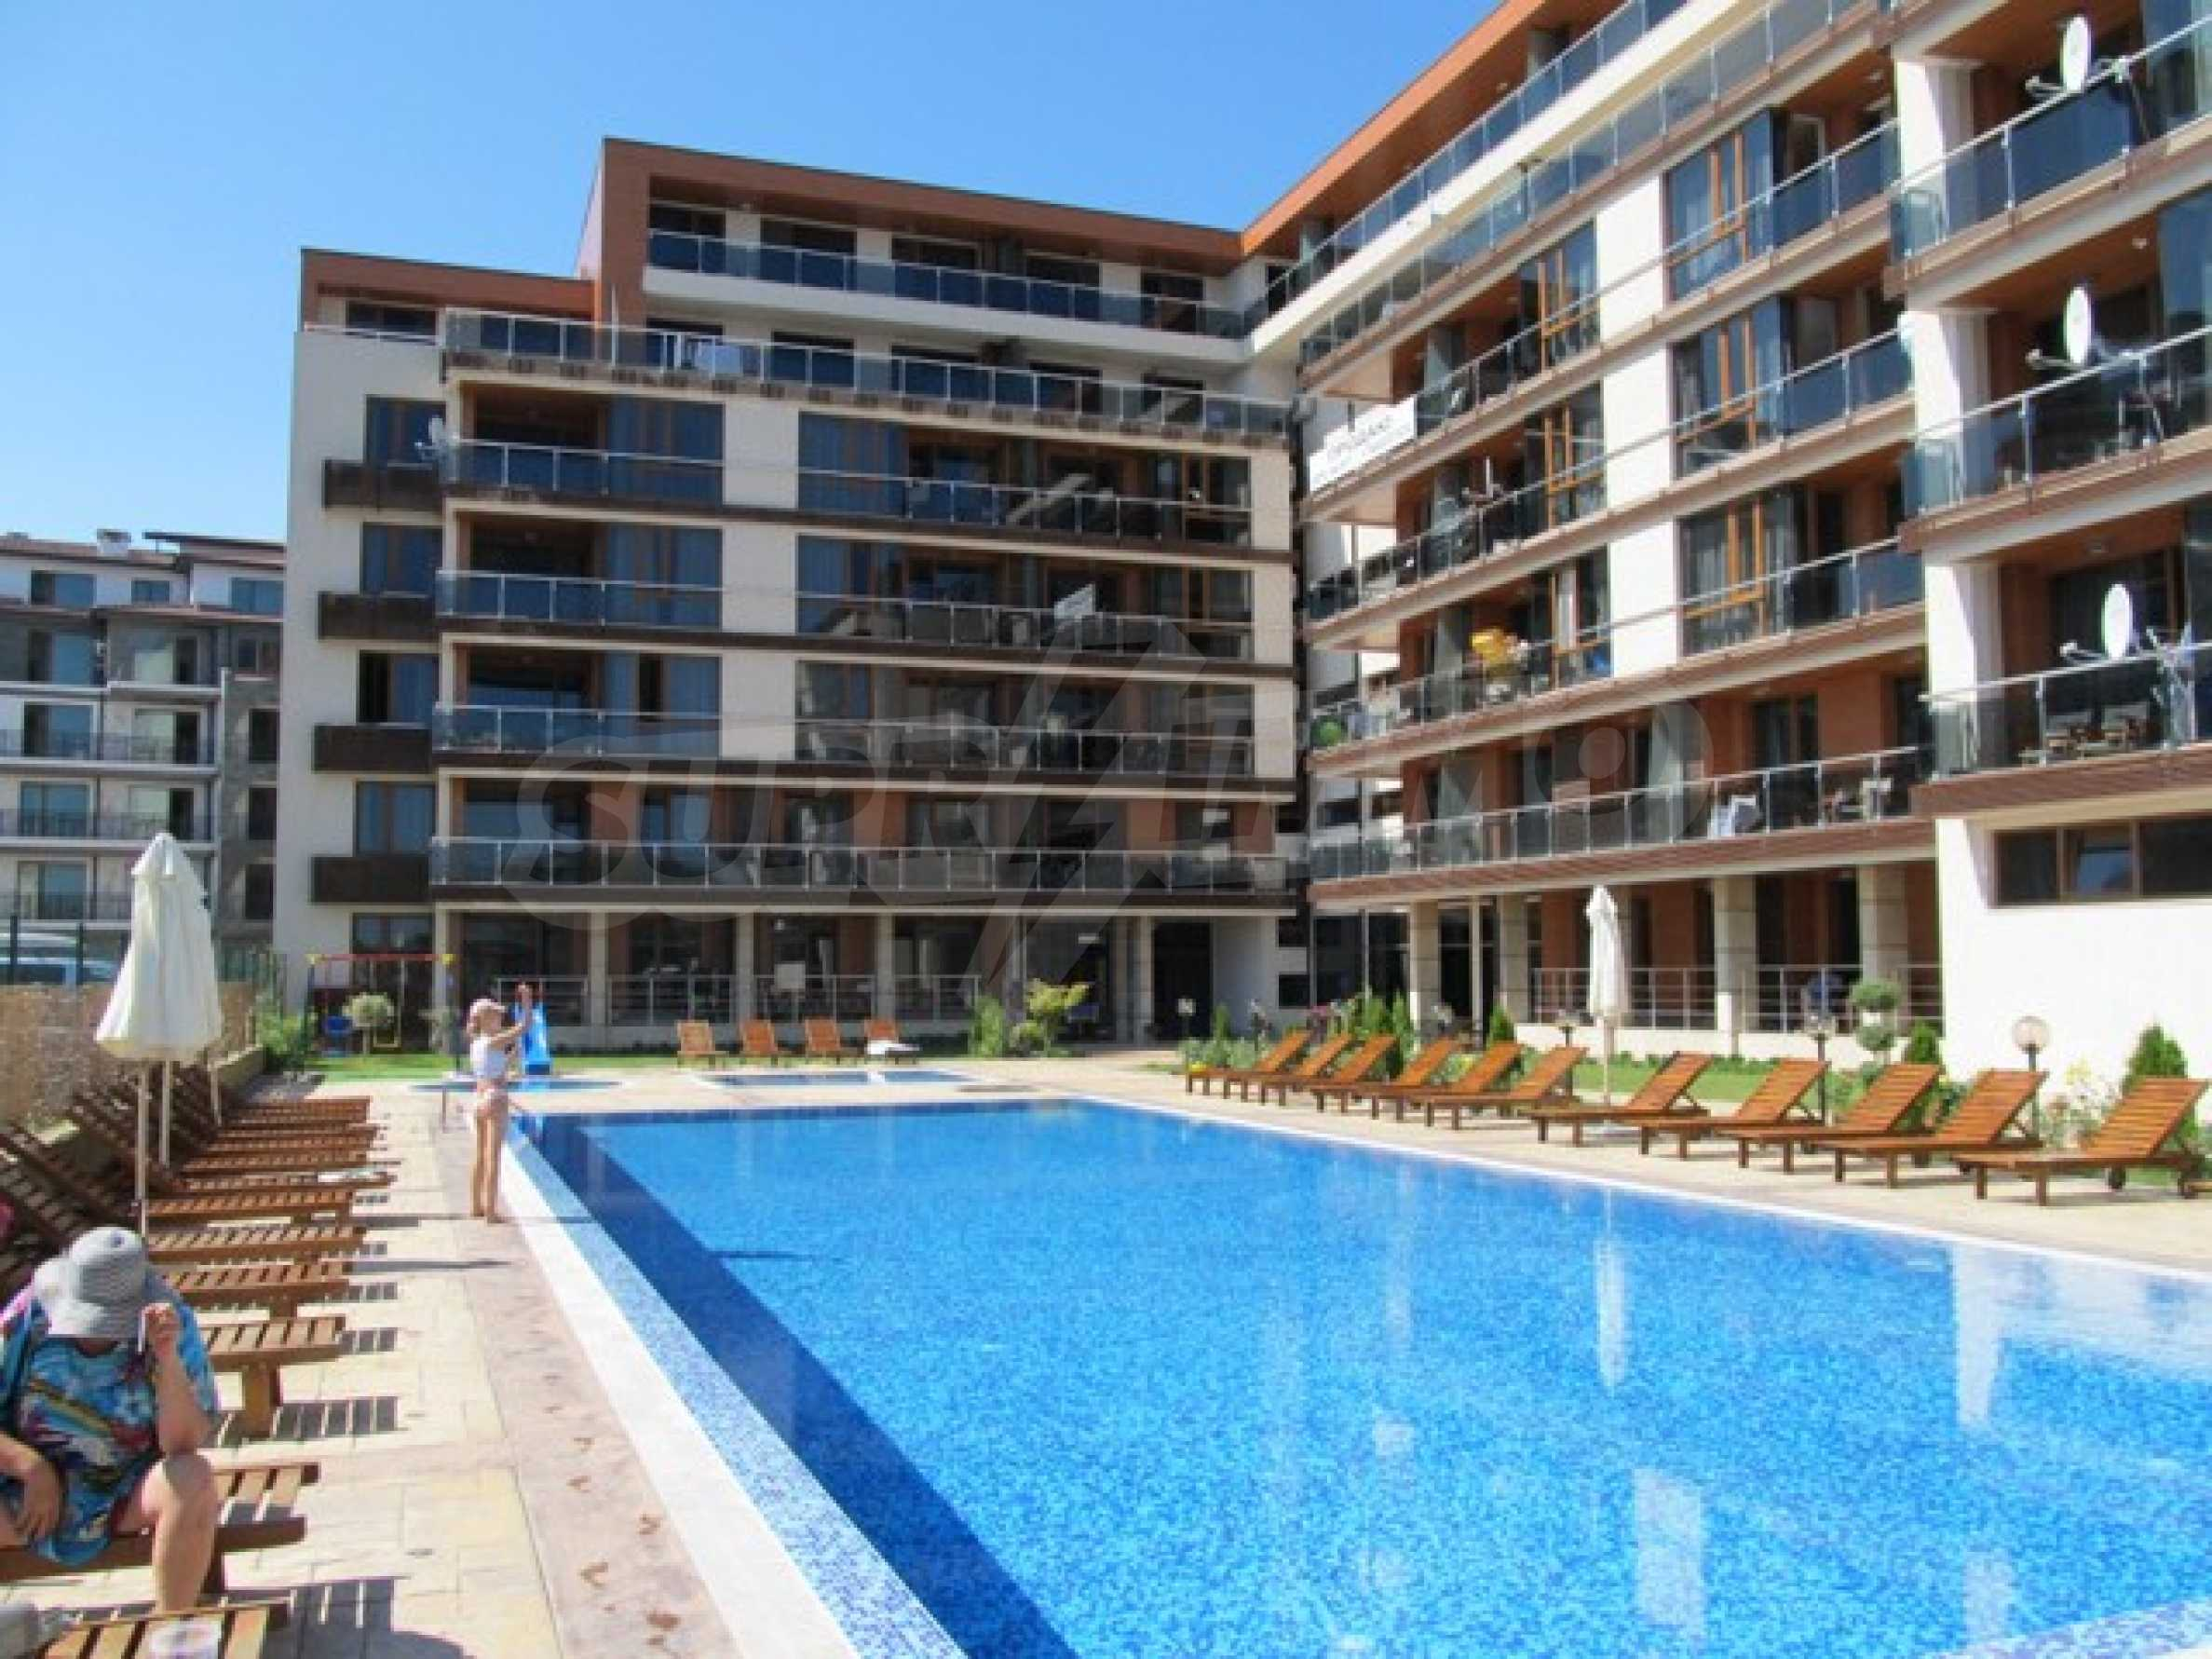 Apartments for sale in Pomorie 2